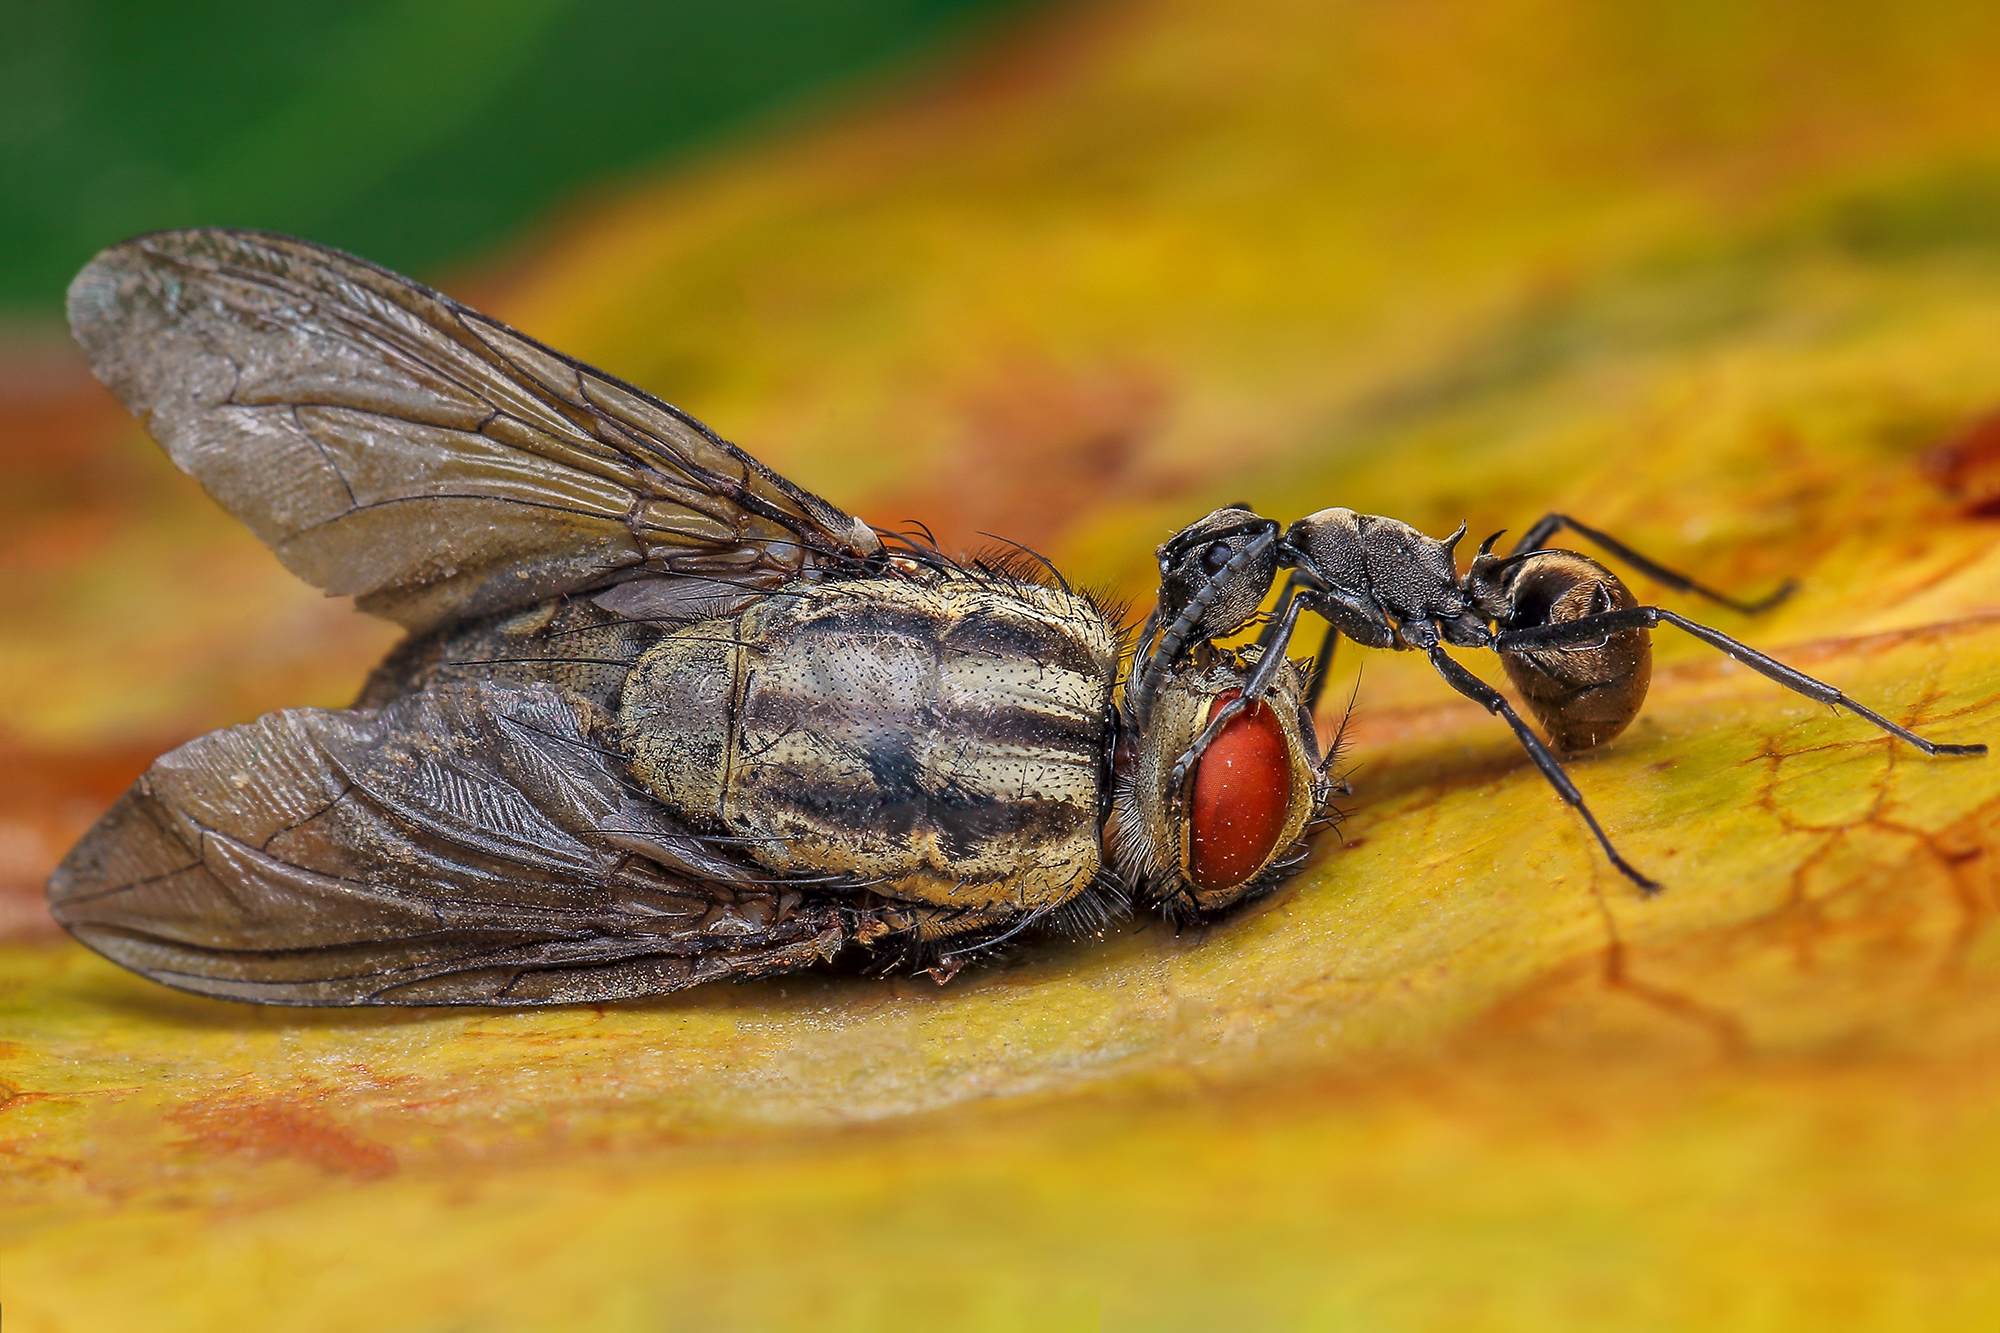 Golden back ant and Flesh Fly